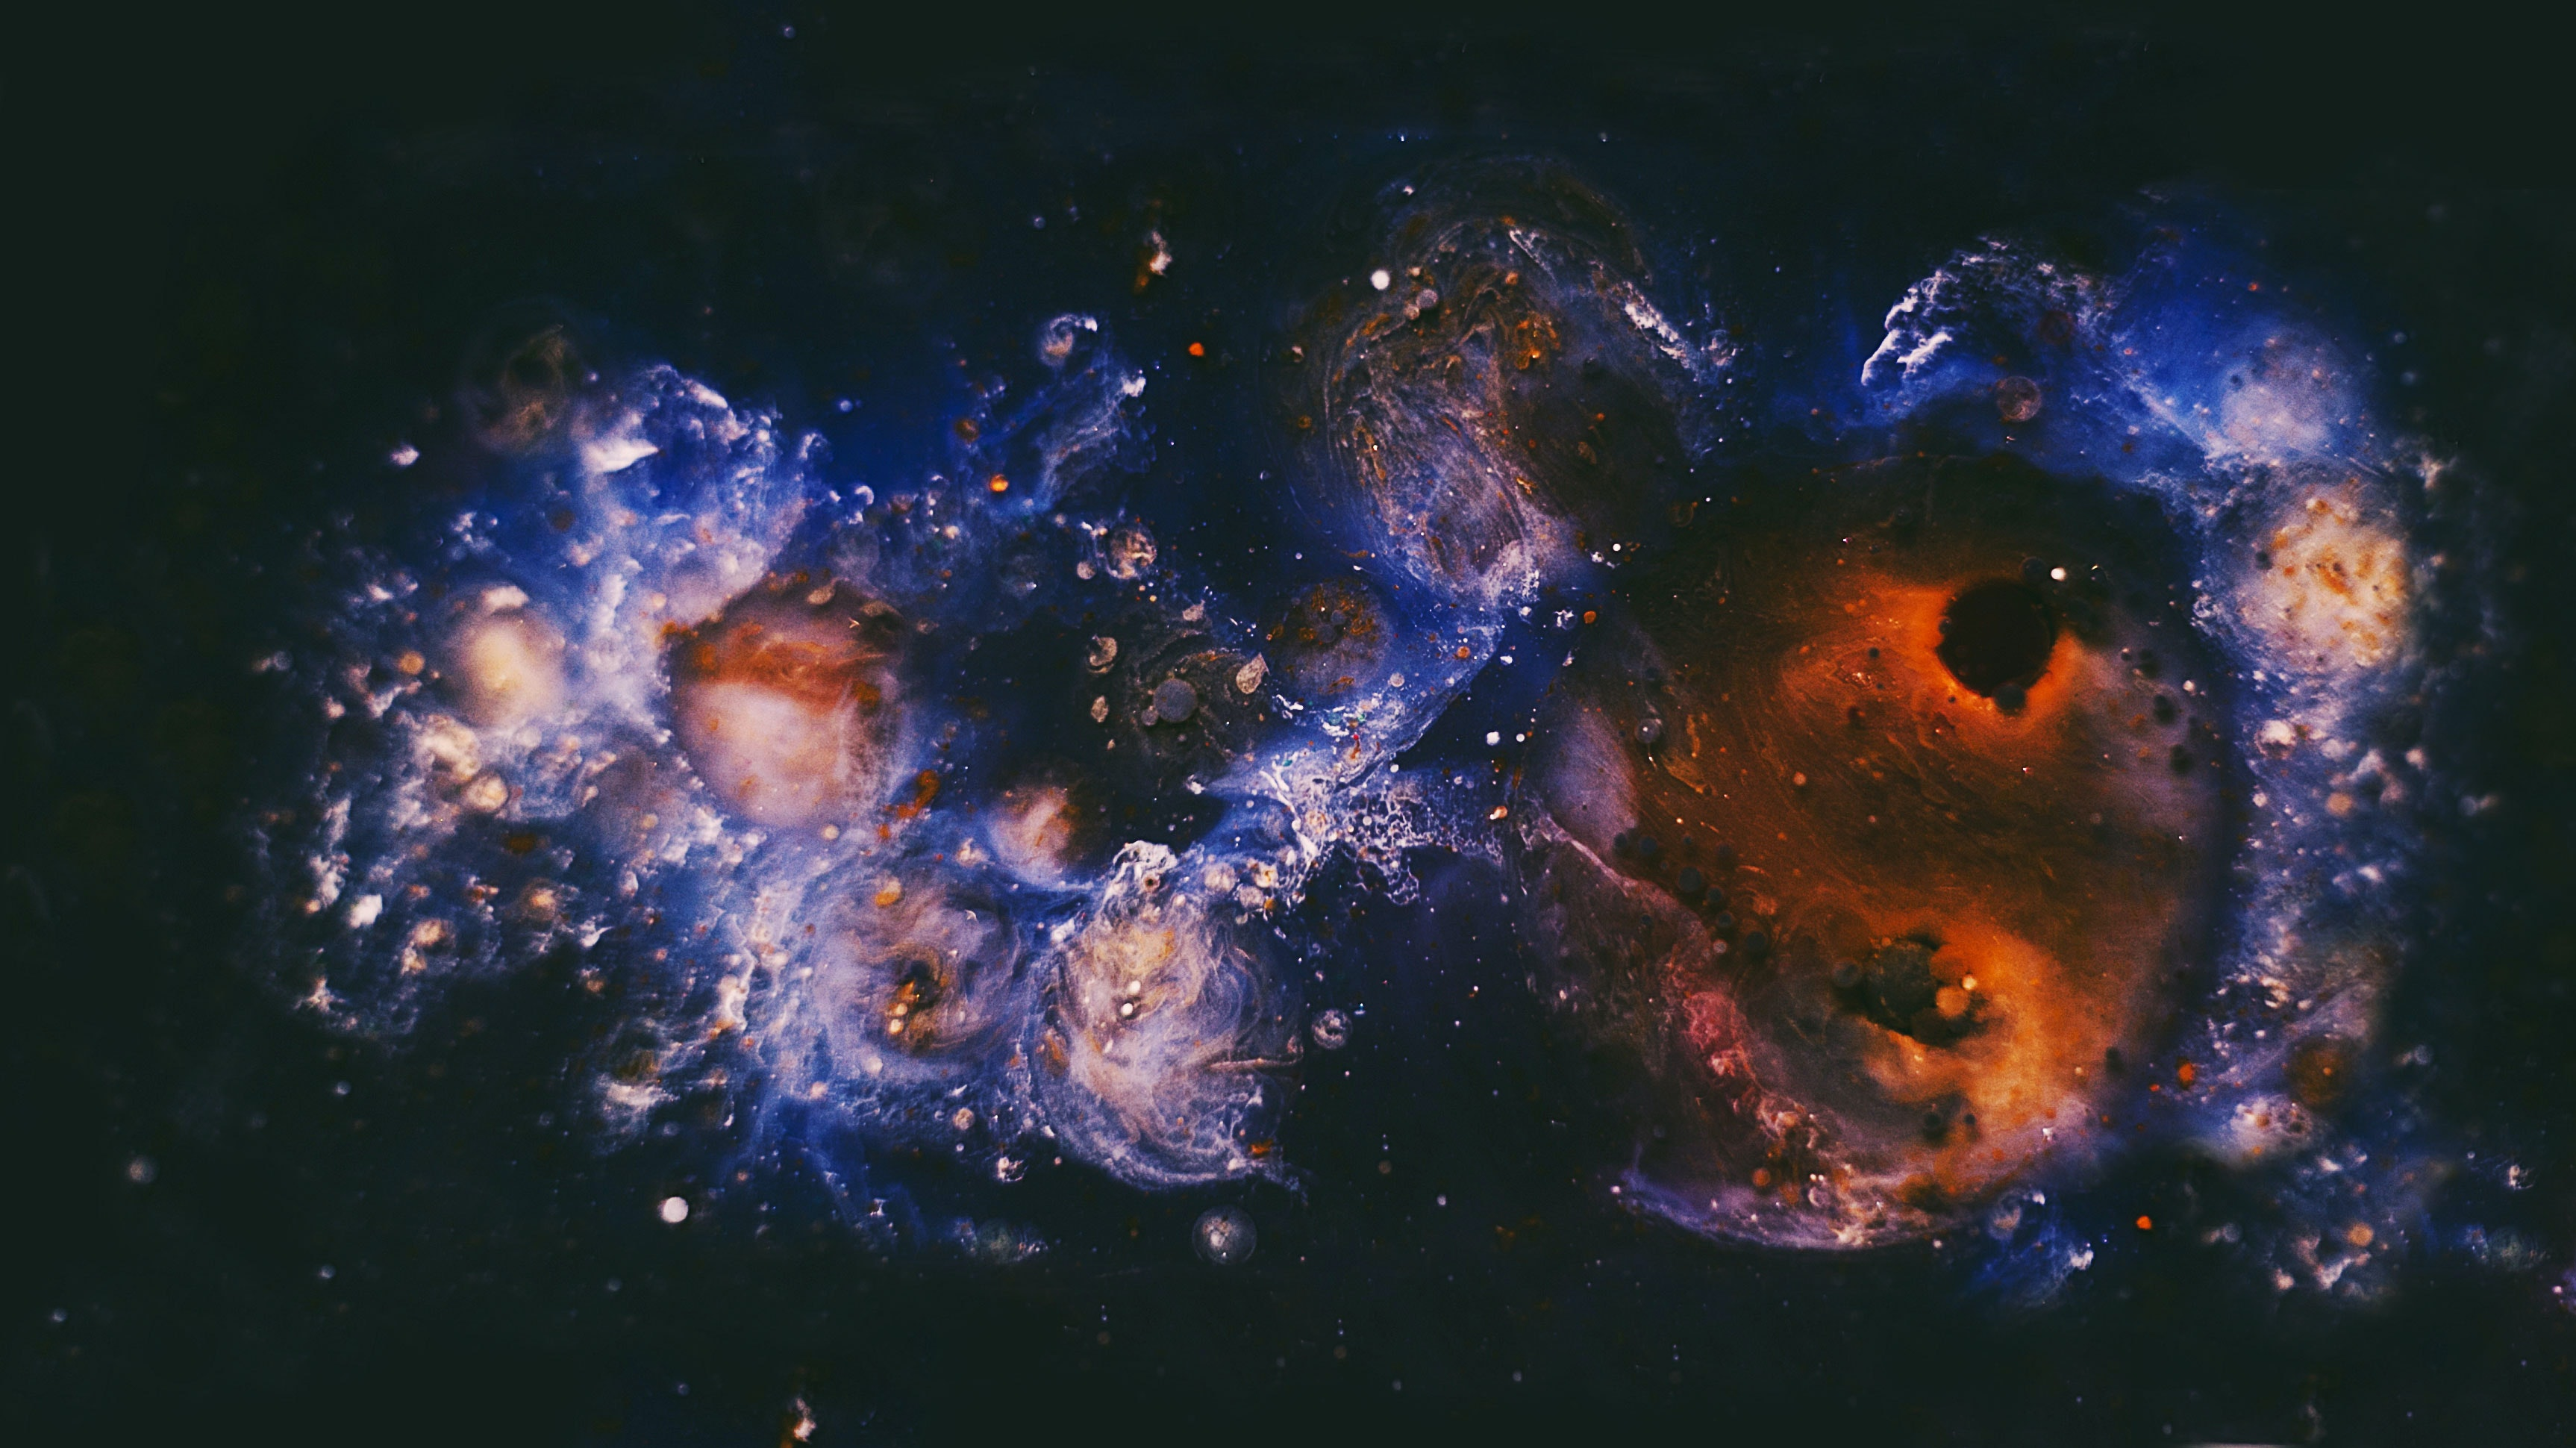 A relic of the Big Bang: The Cosmological Background